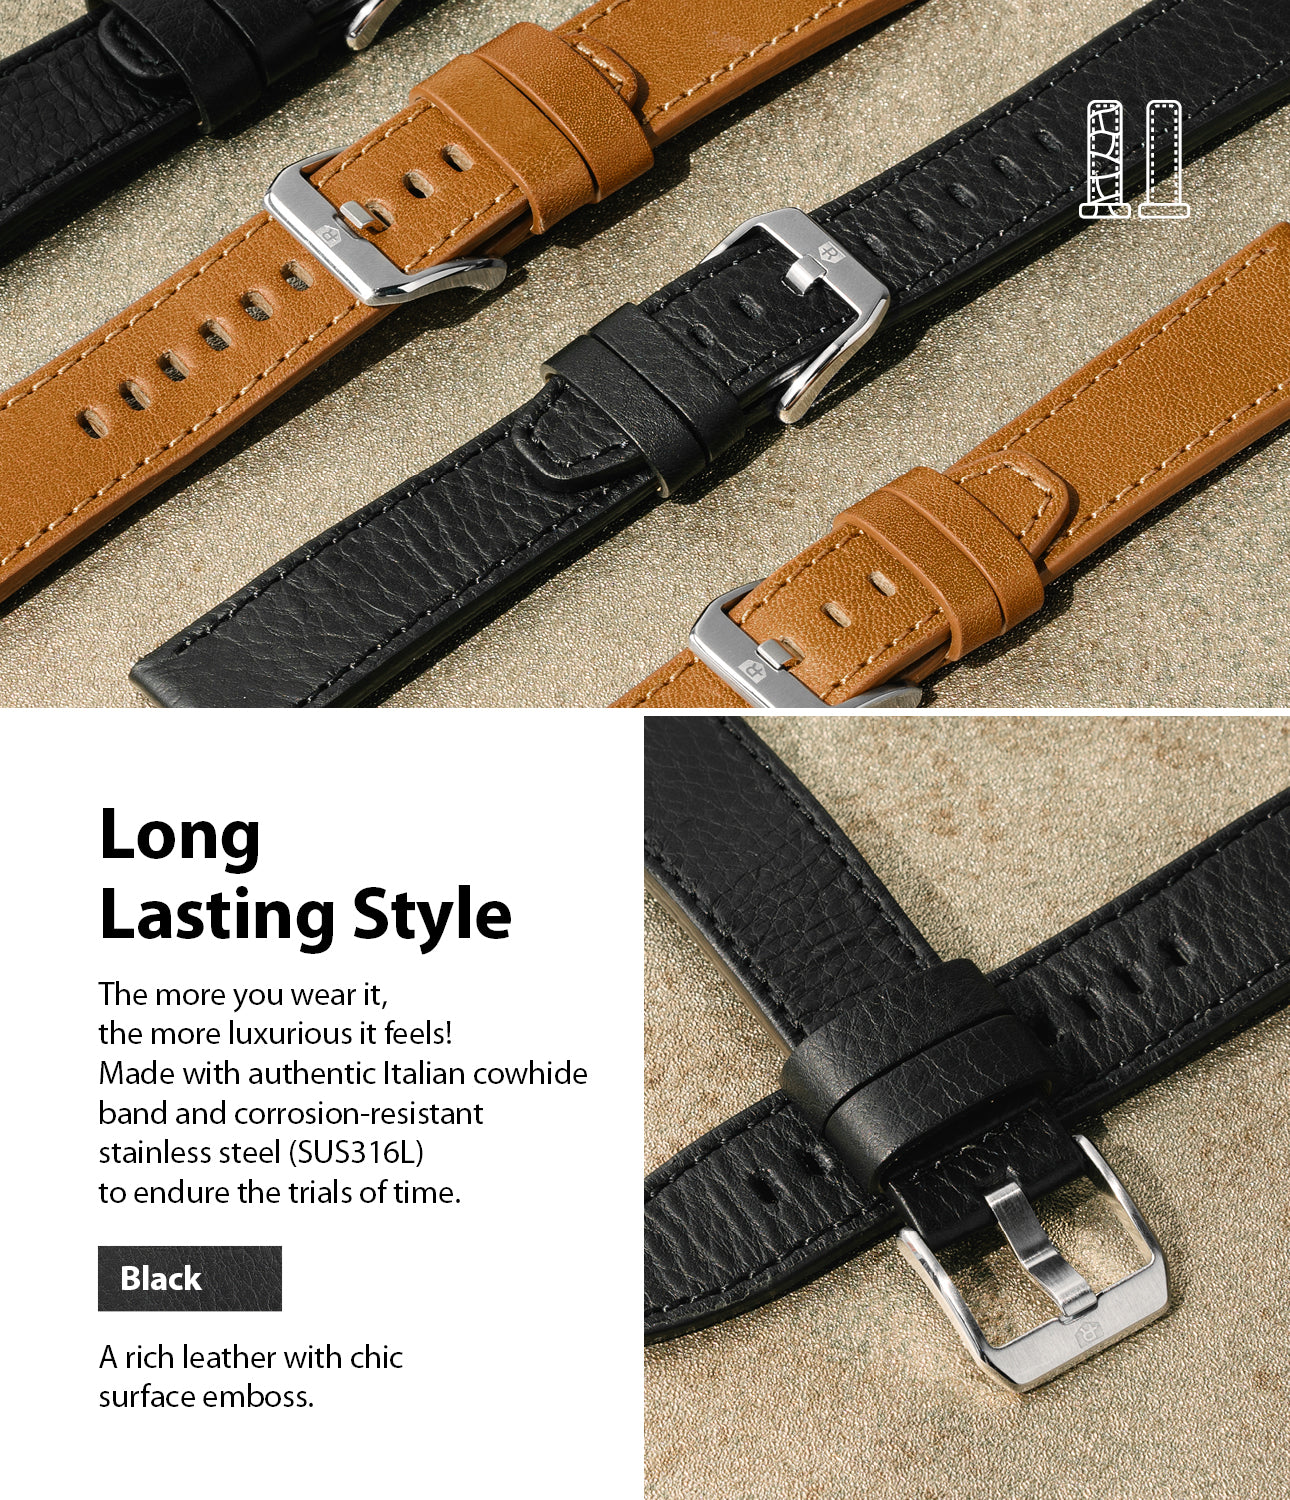 long lasting style - made with authentic italian cowhide band and corrosion resistnat stainless steel to endure the trials of time